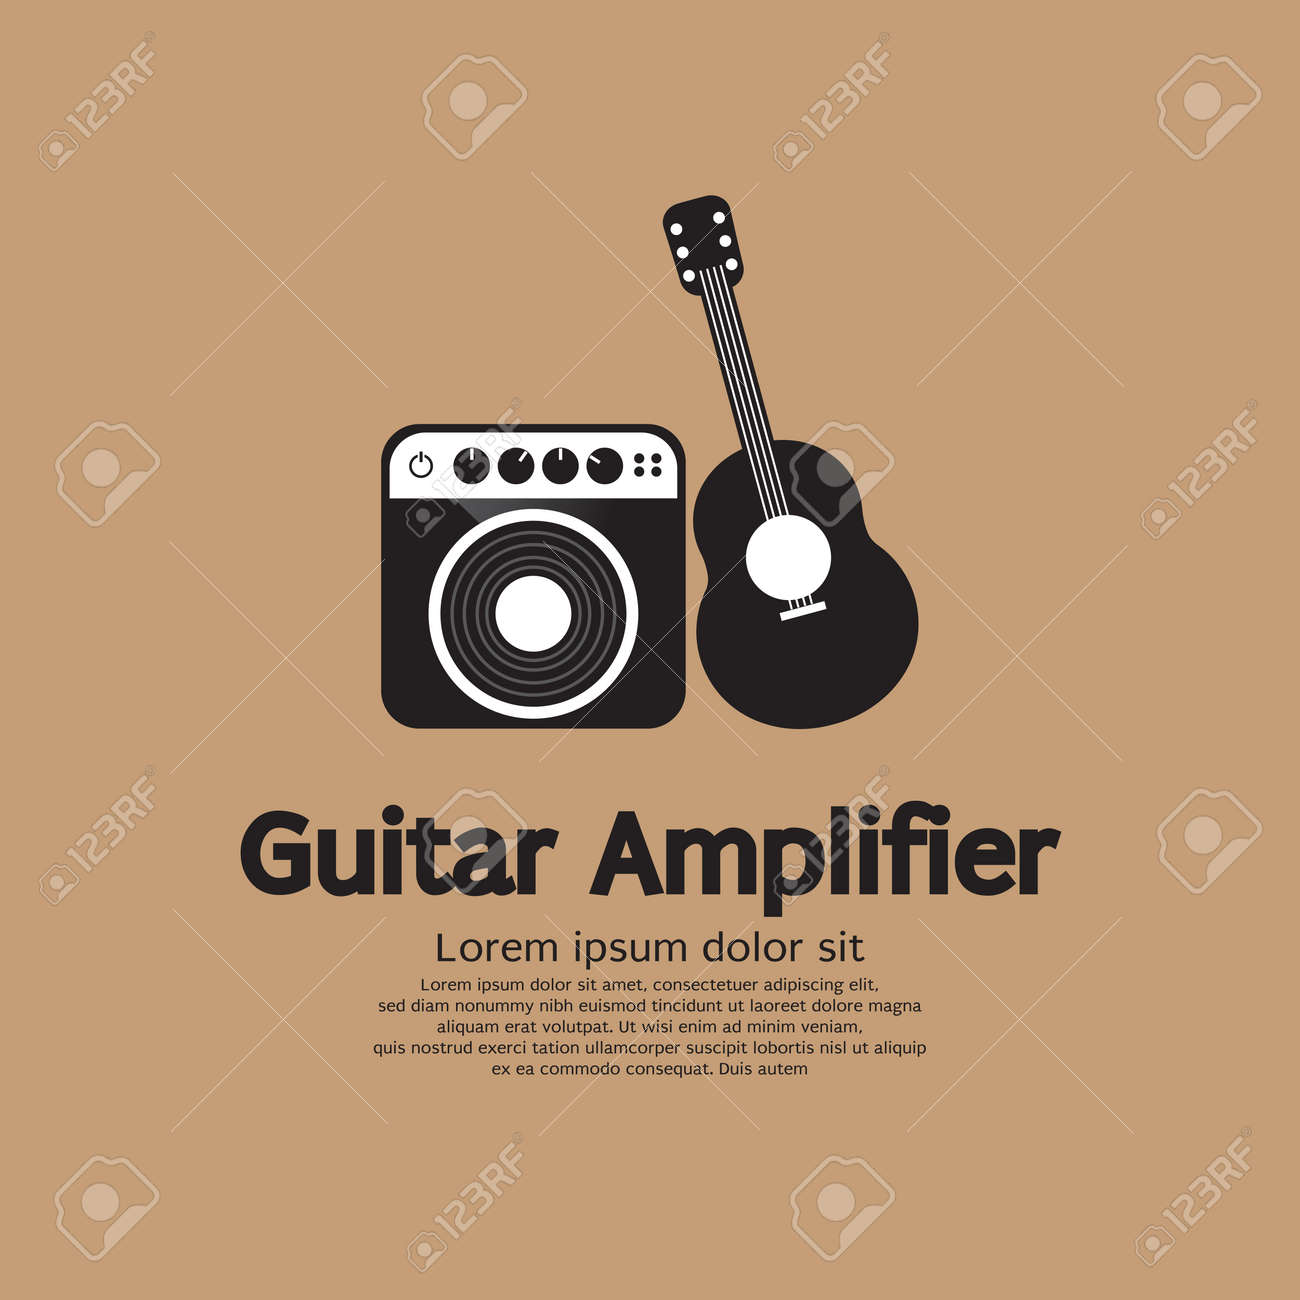 Guitar And Amplifier Vector Illustration Royalty Free Cliparts ...